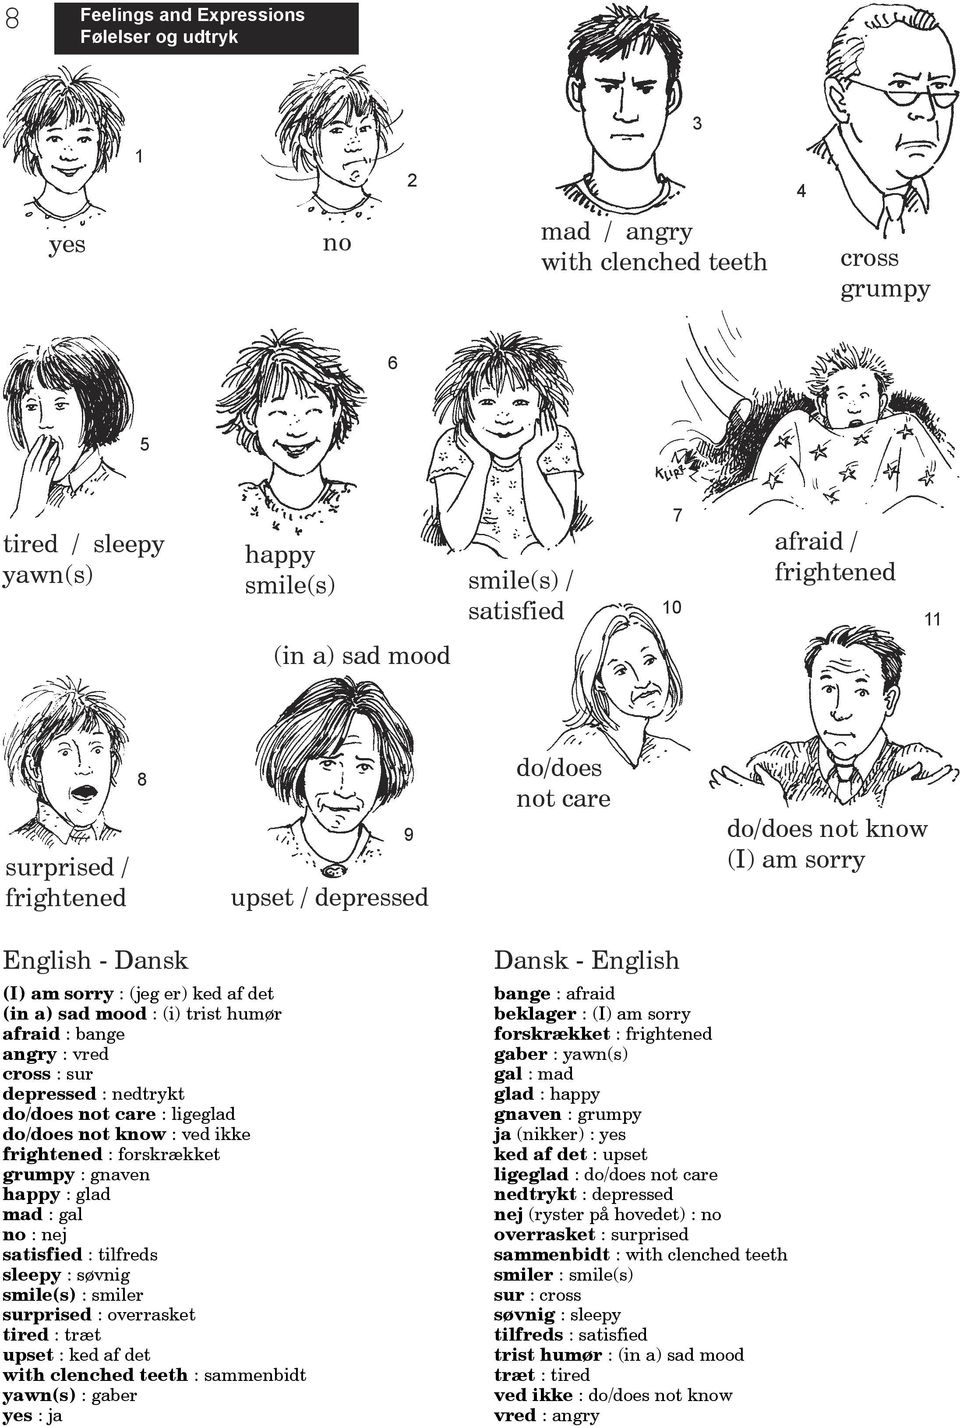 sur depressed : nedtrykt do/does not care : ligeglad do/does not know : ved ikke frightened : forskrækket grumpy : gnaven happy : glad mad : gal no : nej satisfied : tilfreds sleepy : søvnig smile(s)